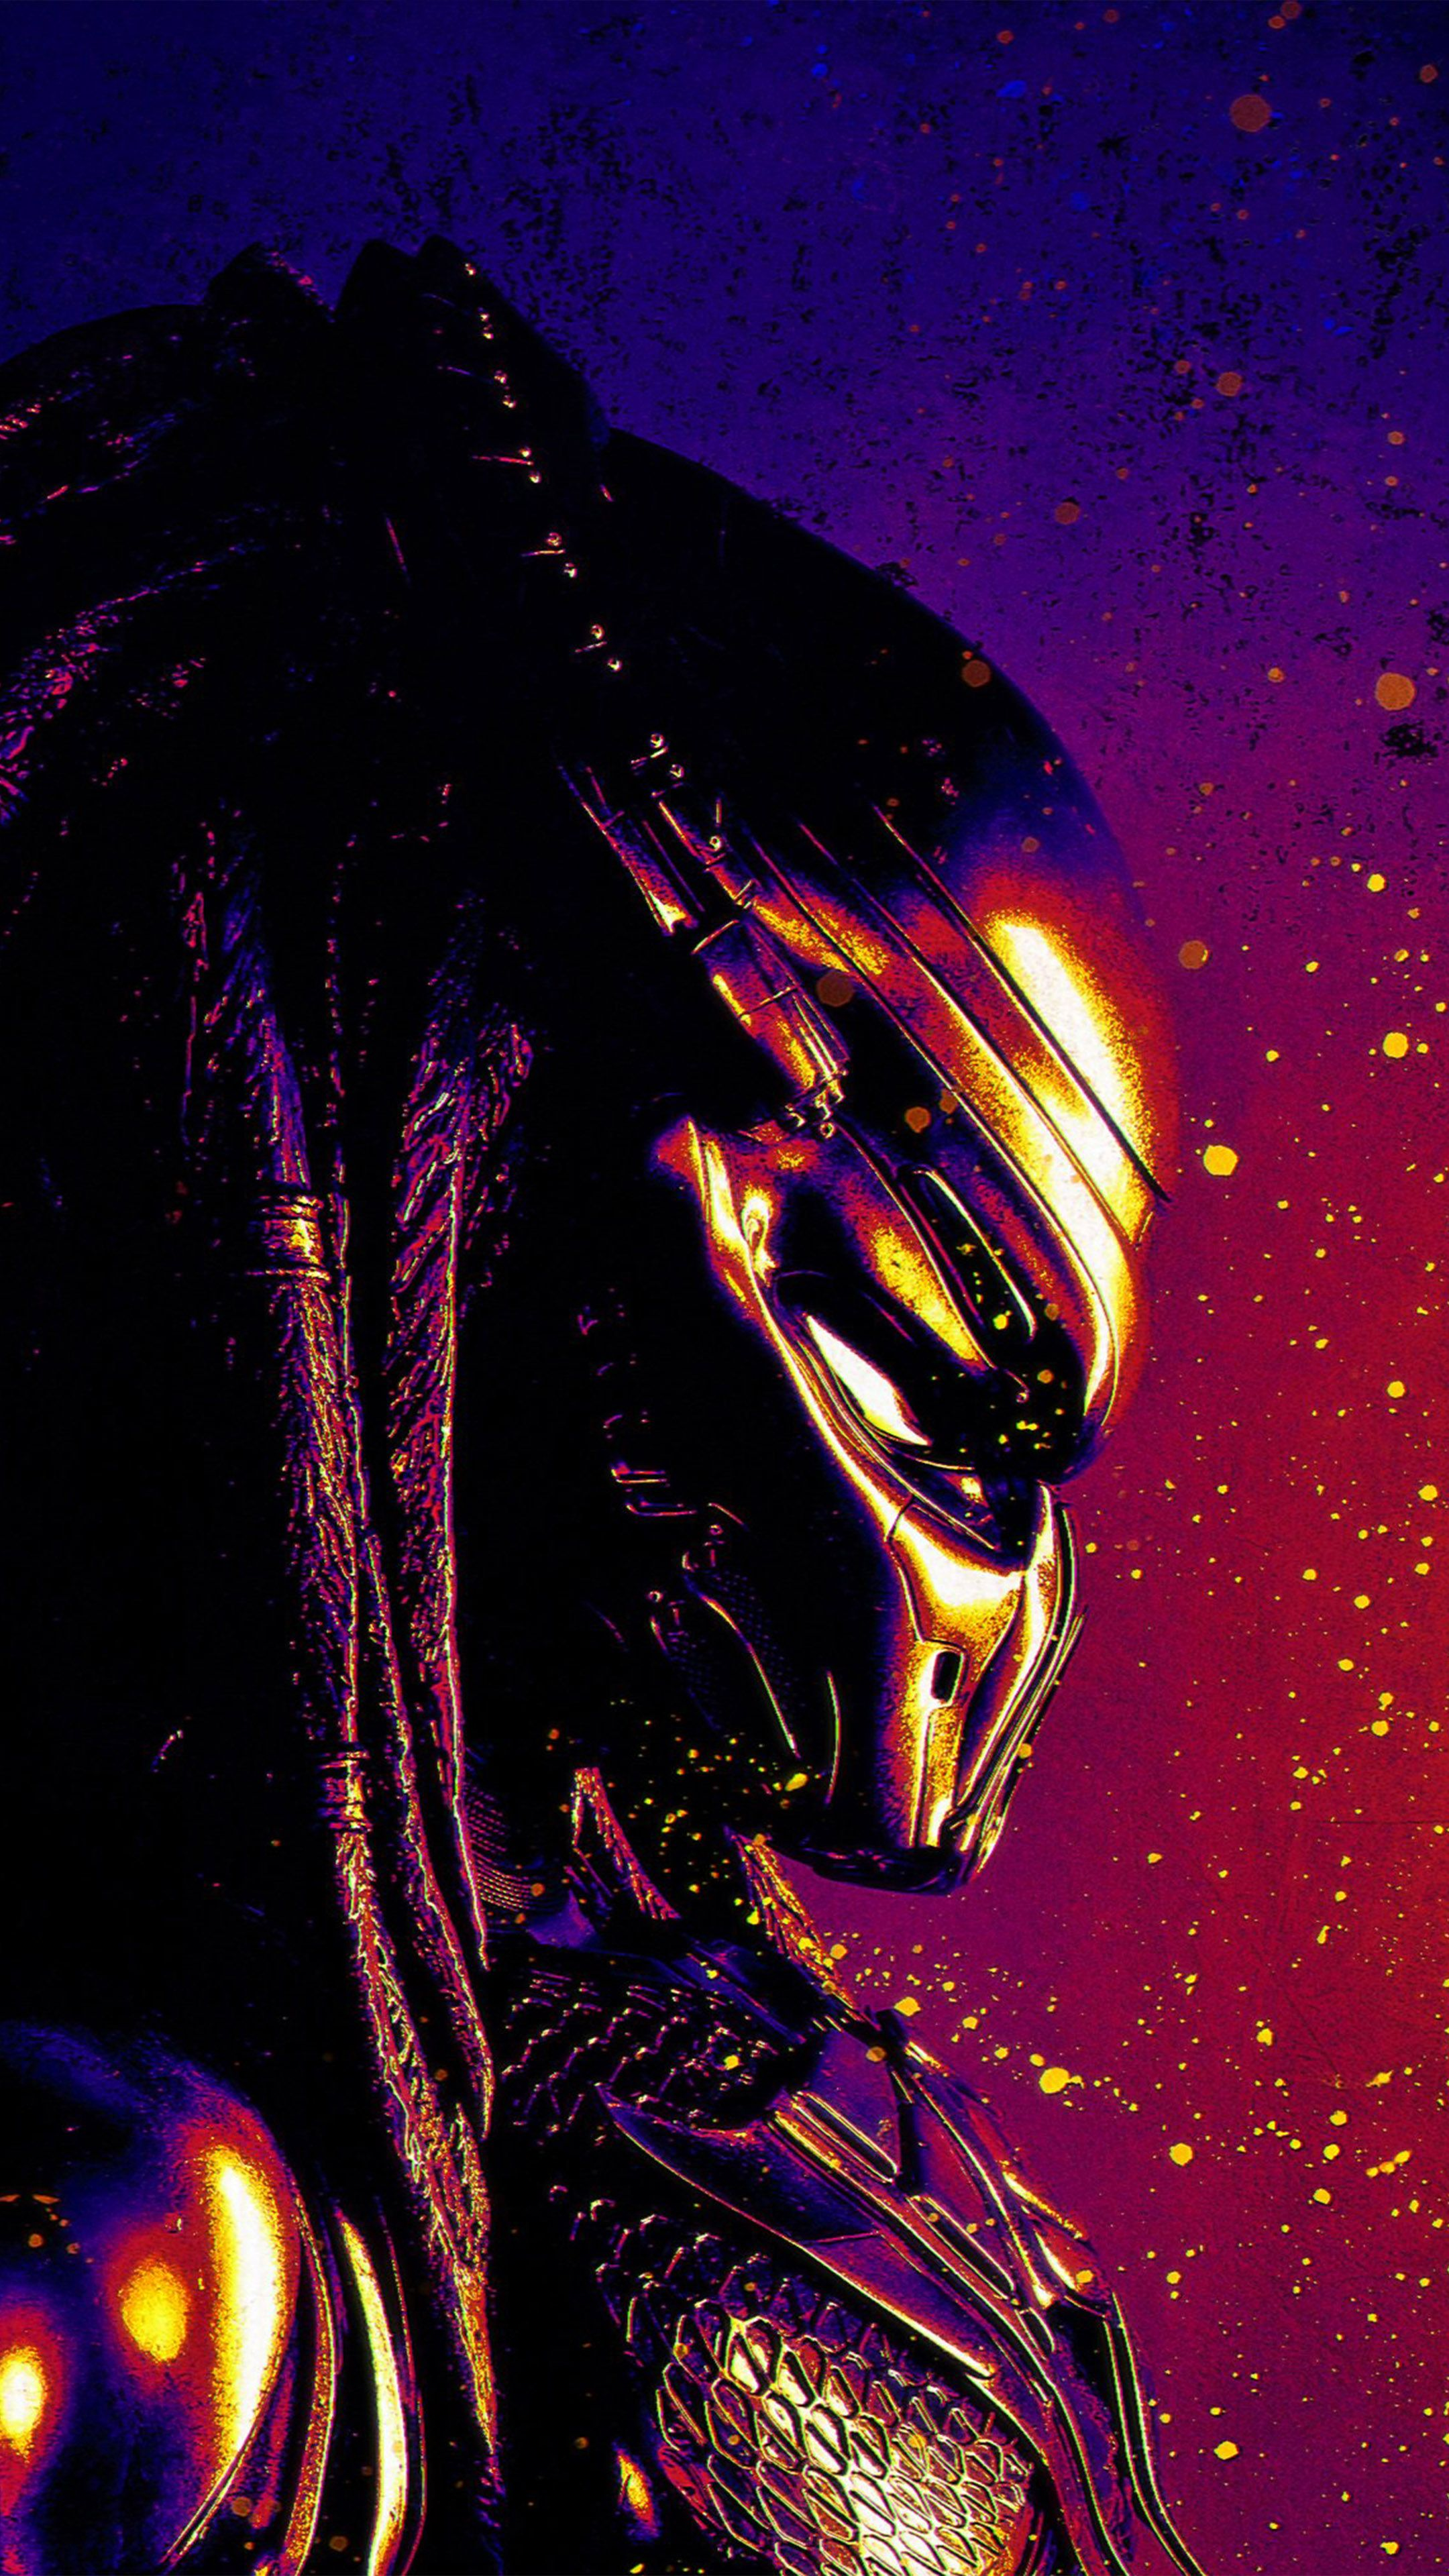 Predator 2018 Artwork 4k Ultra Hd Mobile Wallpaper Cool Wallpapers 4k Predator Artwork Wallpapers For Mobile Phones